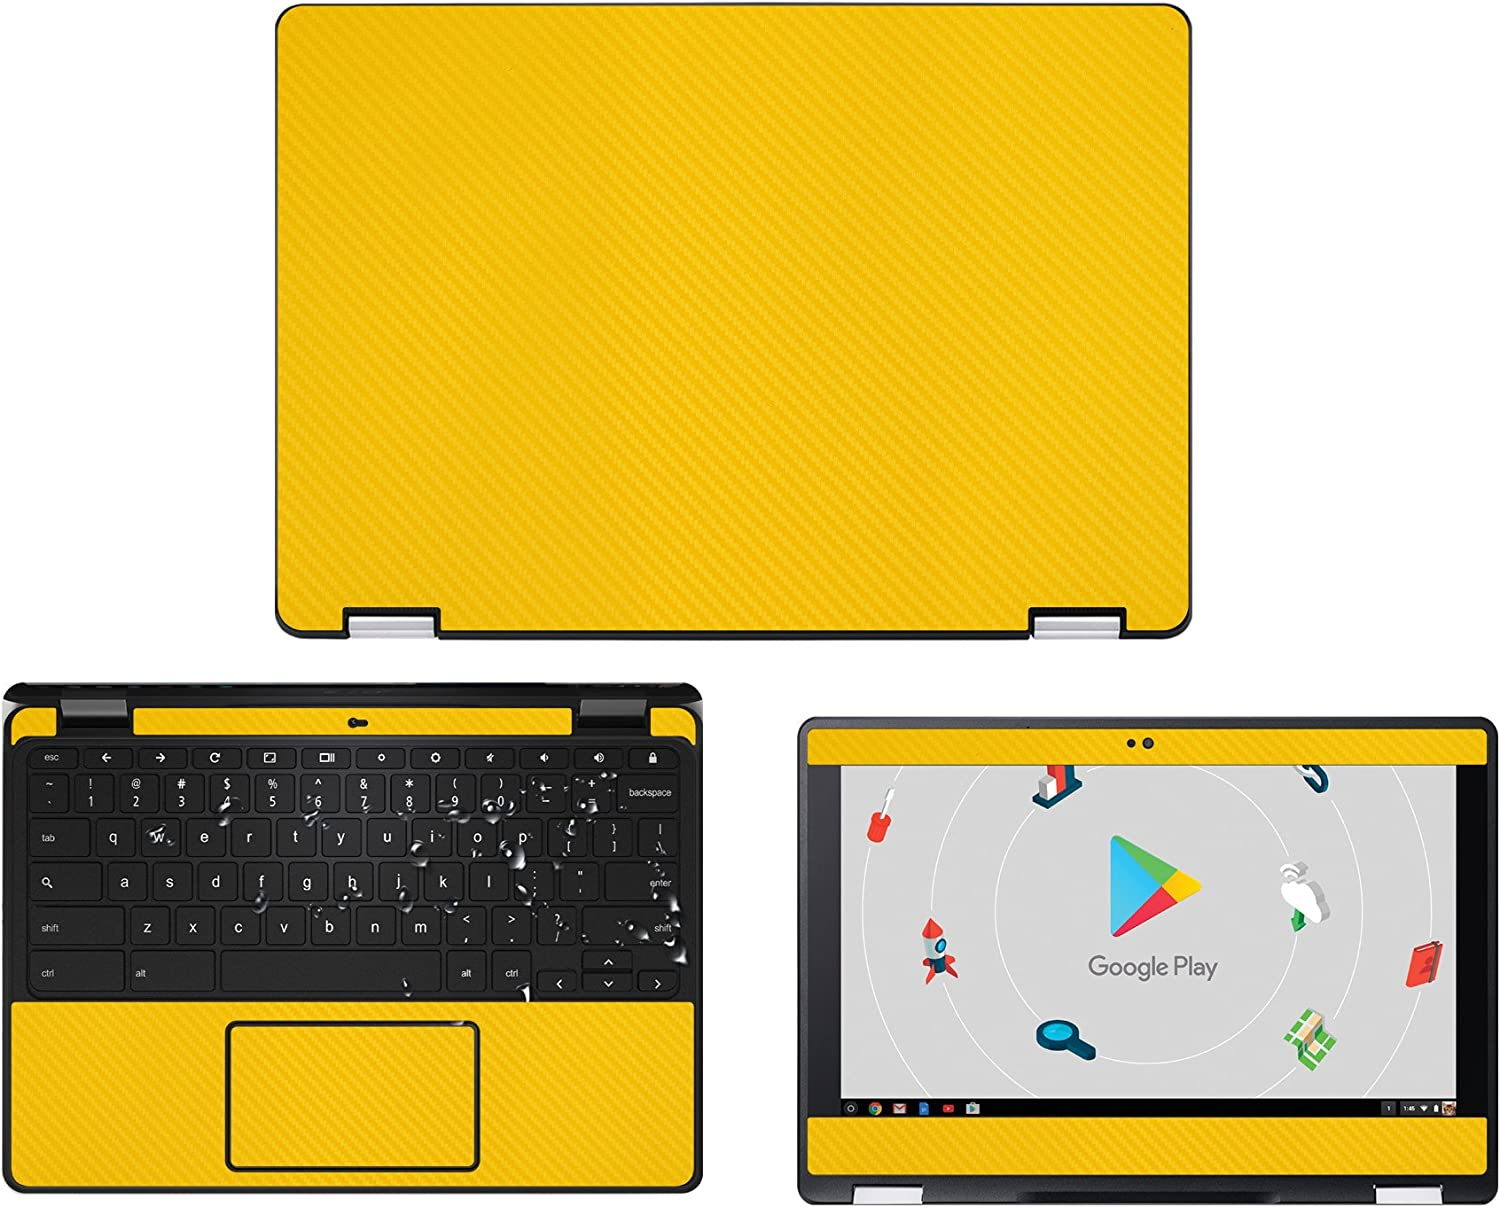 decalrus - Protective Decal for Acer ChromeBook Spin 11 R751TN / CP511 / R751T (11.6